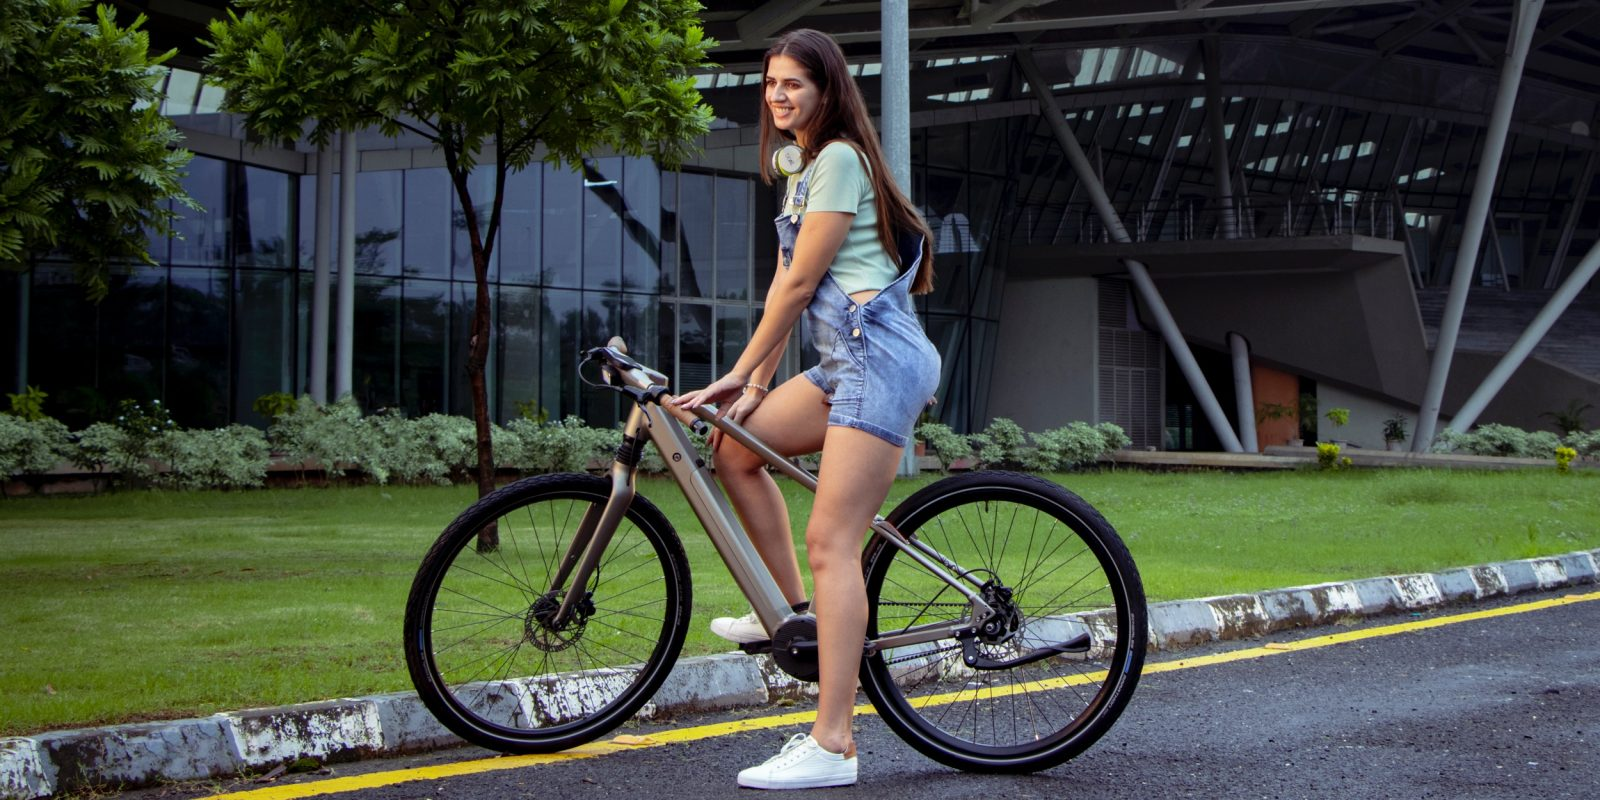 Believe it or not, study shows e-bike riders get more exercise than cyclists